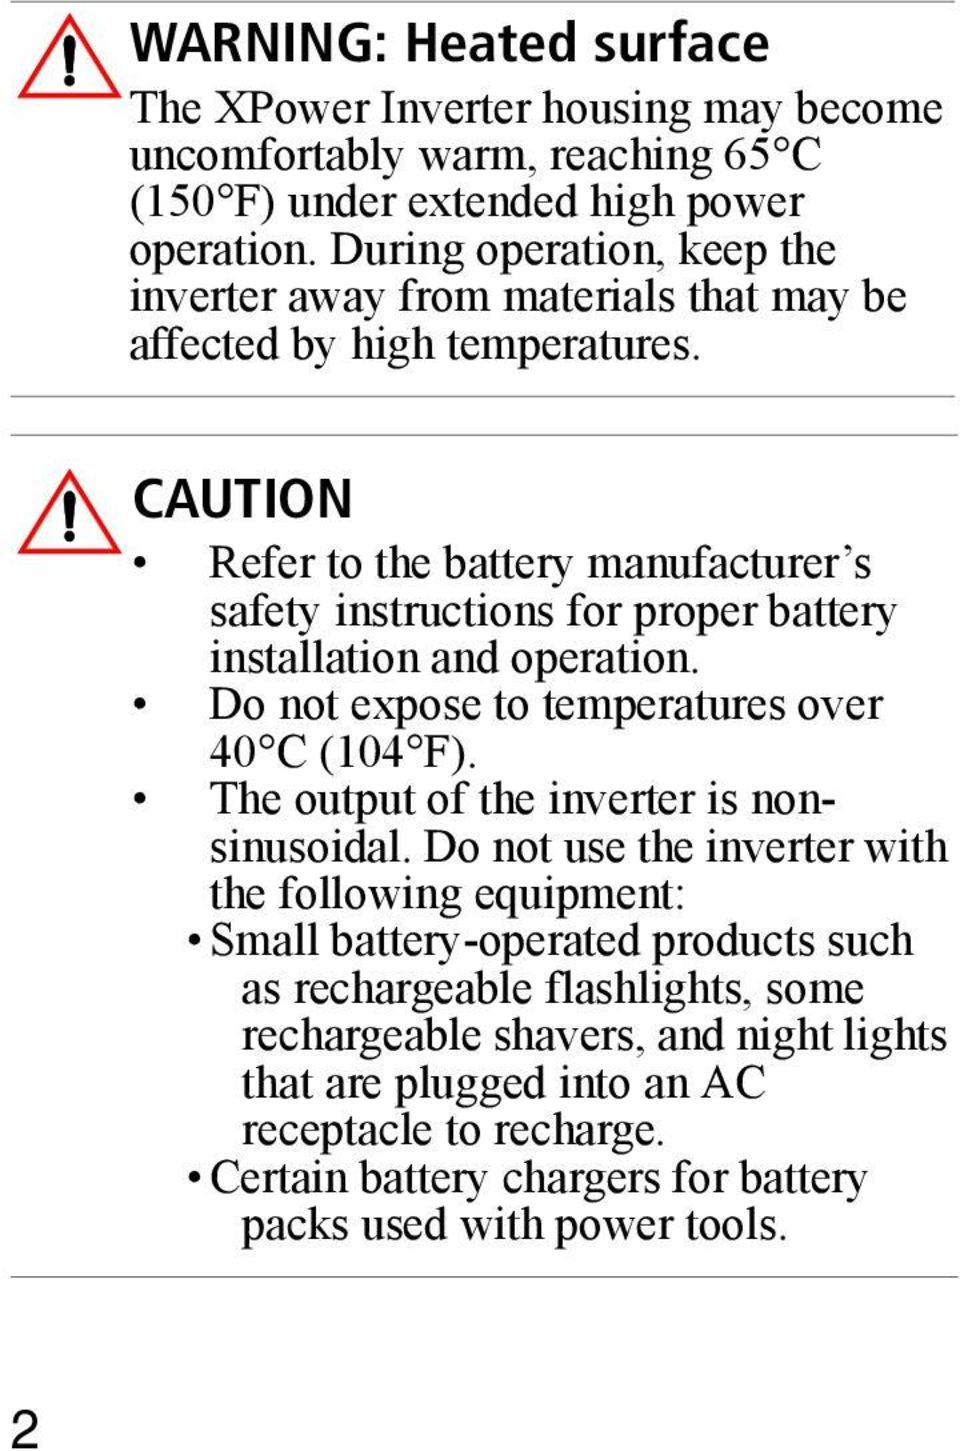 CAUTION Refer to the battery manufacturer s safety instructions for proper battery installation and operation. Do not expose to temperatures over 40 C (104 F).